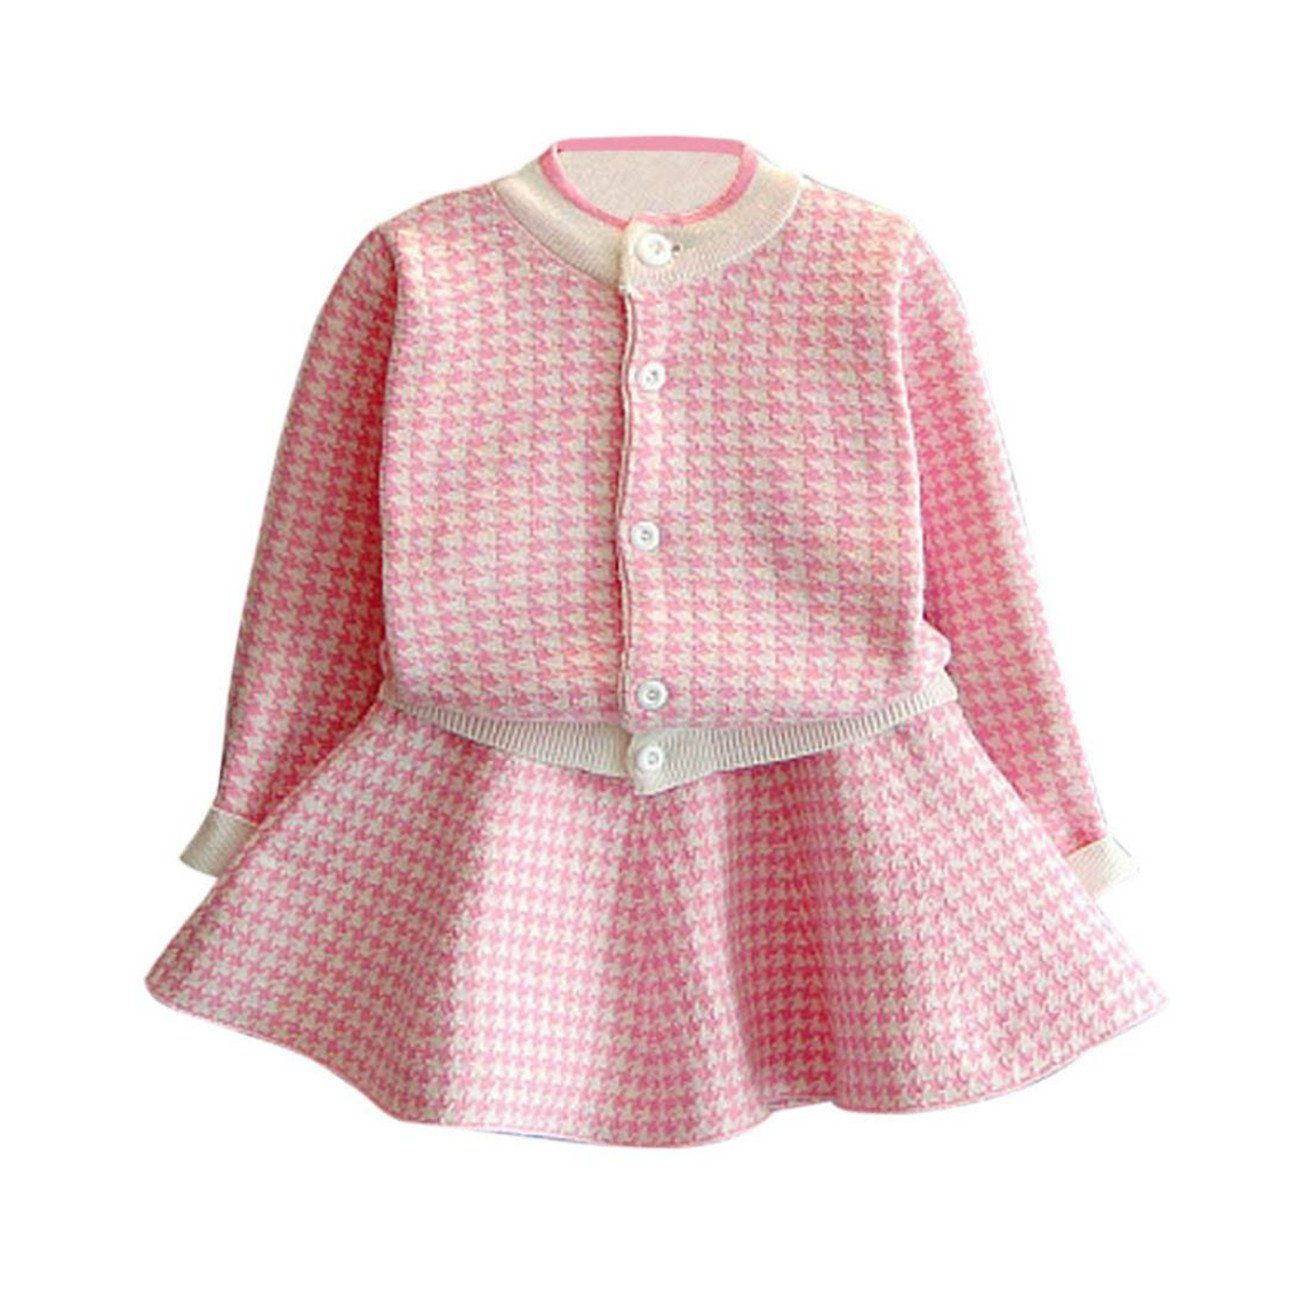 Toddler Kid Baby Girl Autumn Winter Plaid Knitted Sweater Dress Coat Tops and Skirt Set